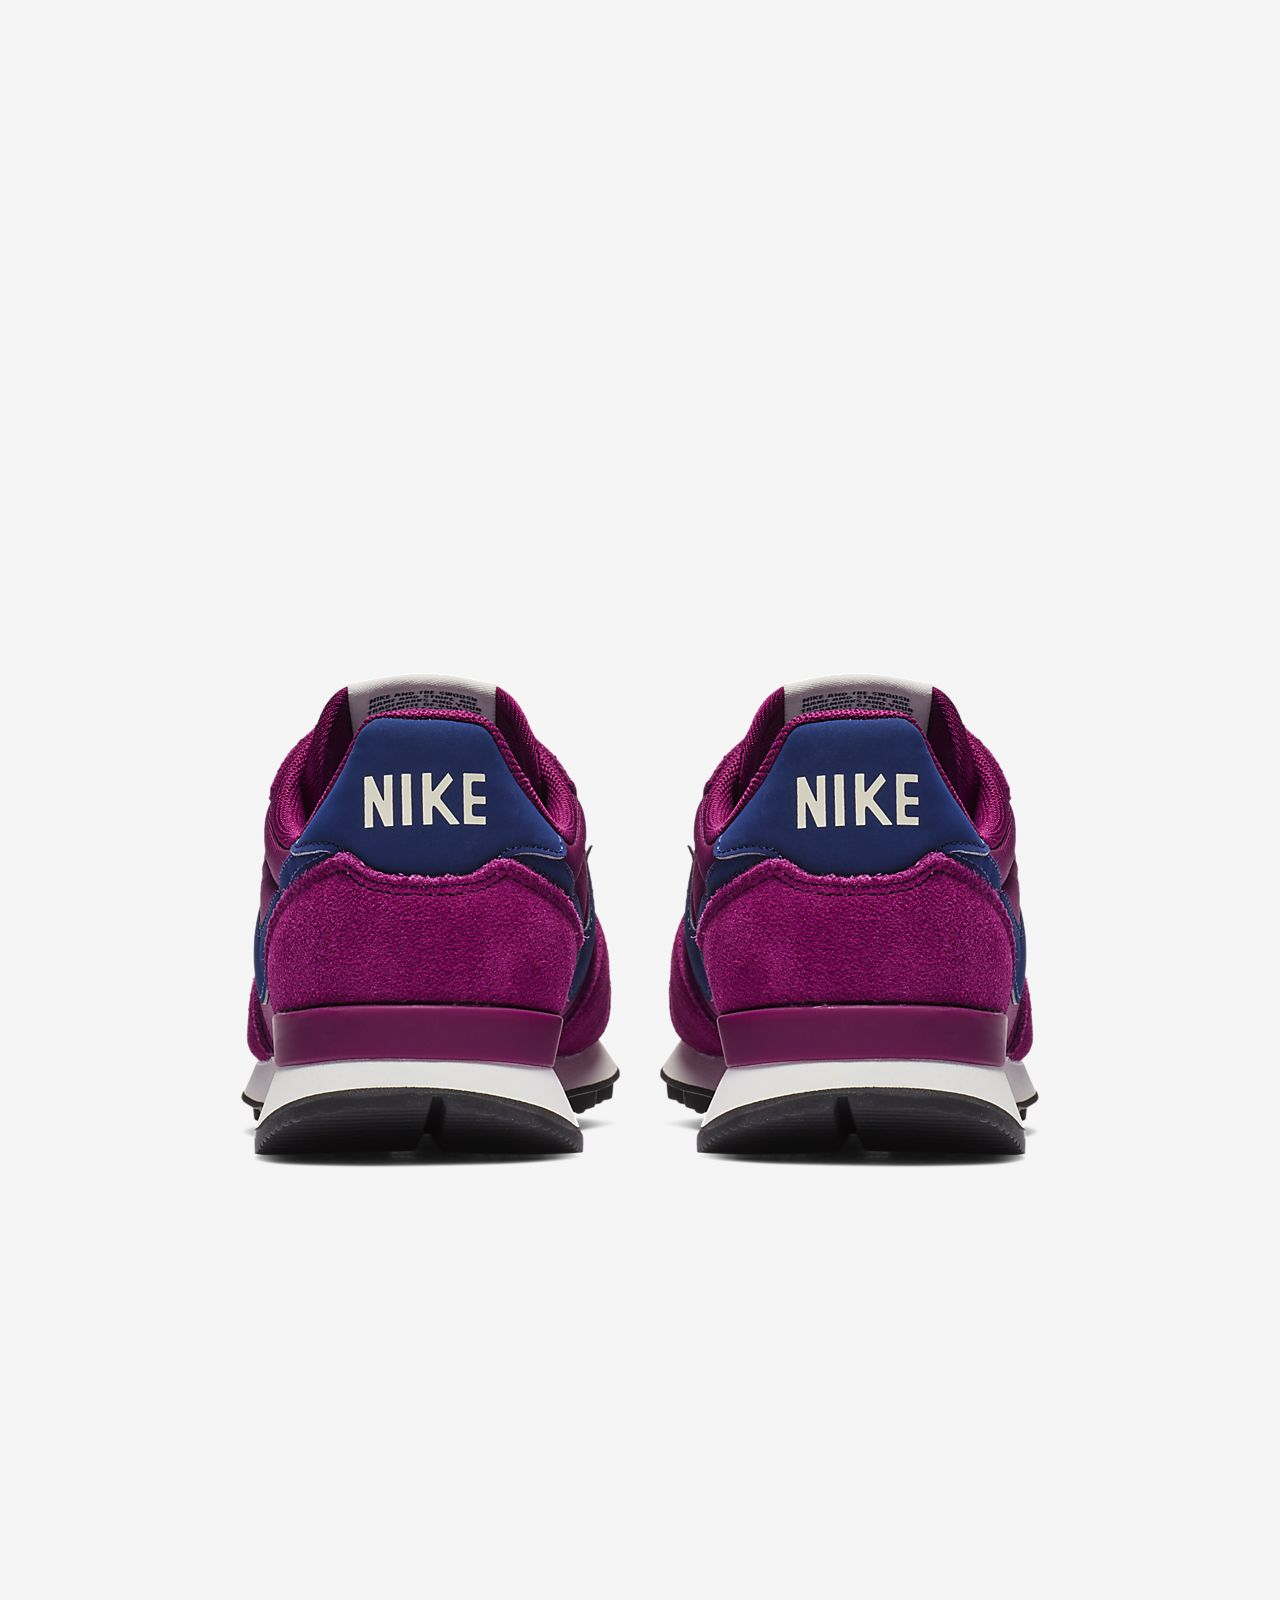 newest 83e51 acdd7 Low Resolution Nike Internationalist Women s Shoe Nike Internationalist Women s  Shoe